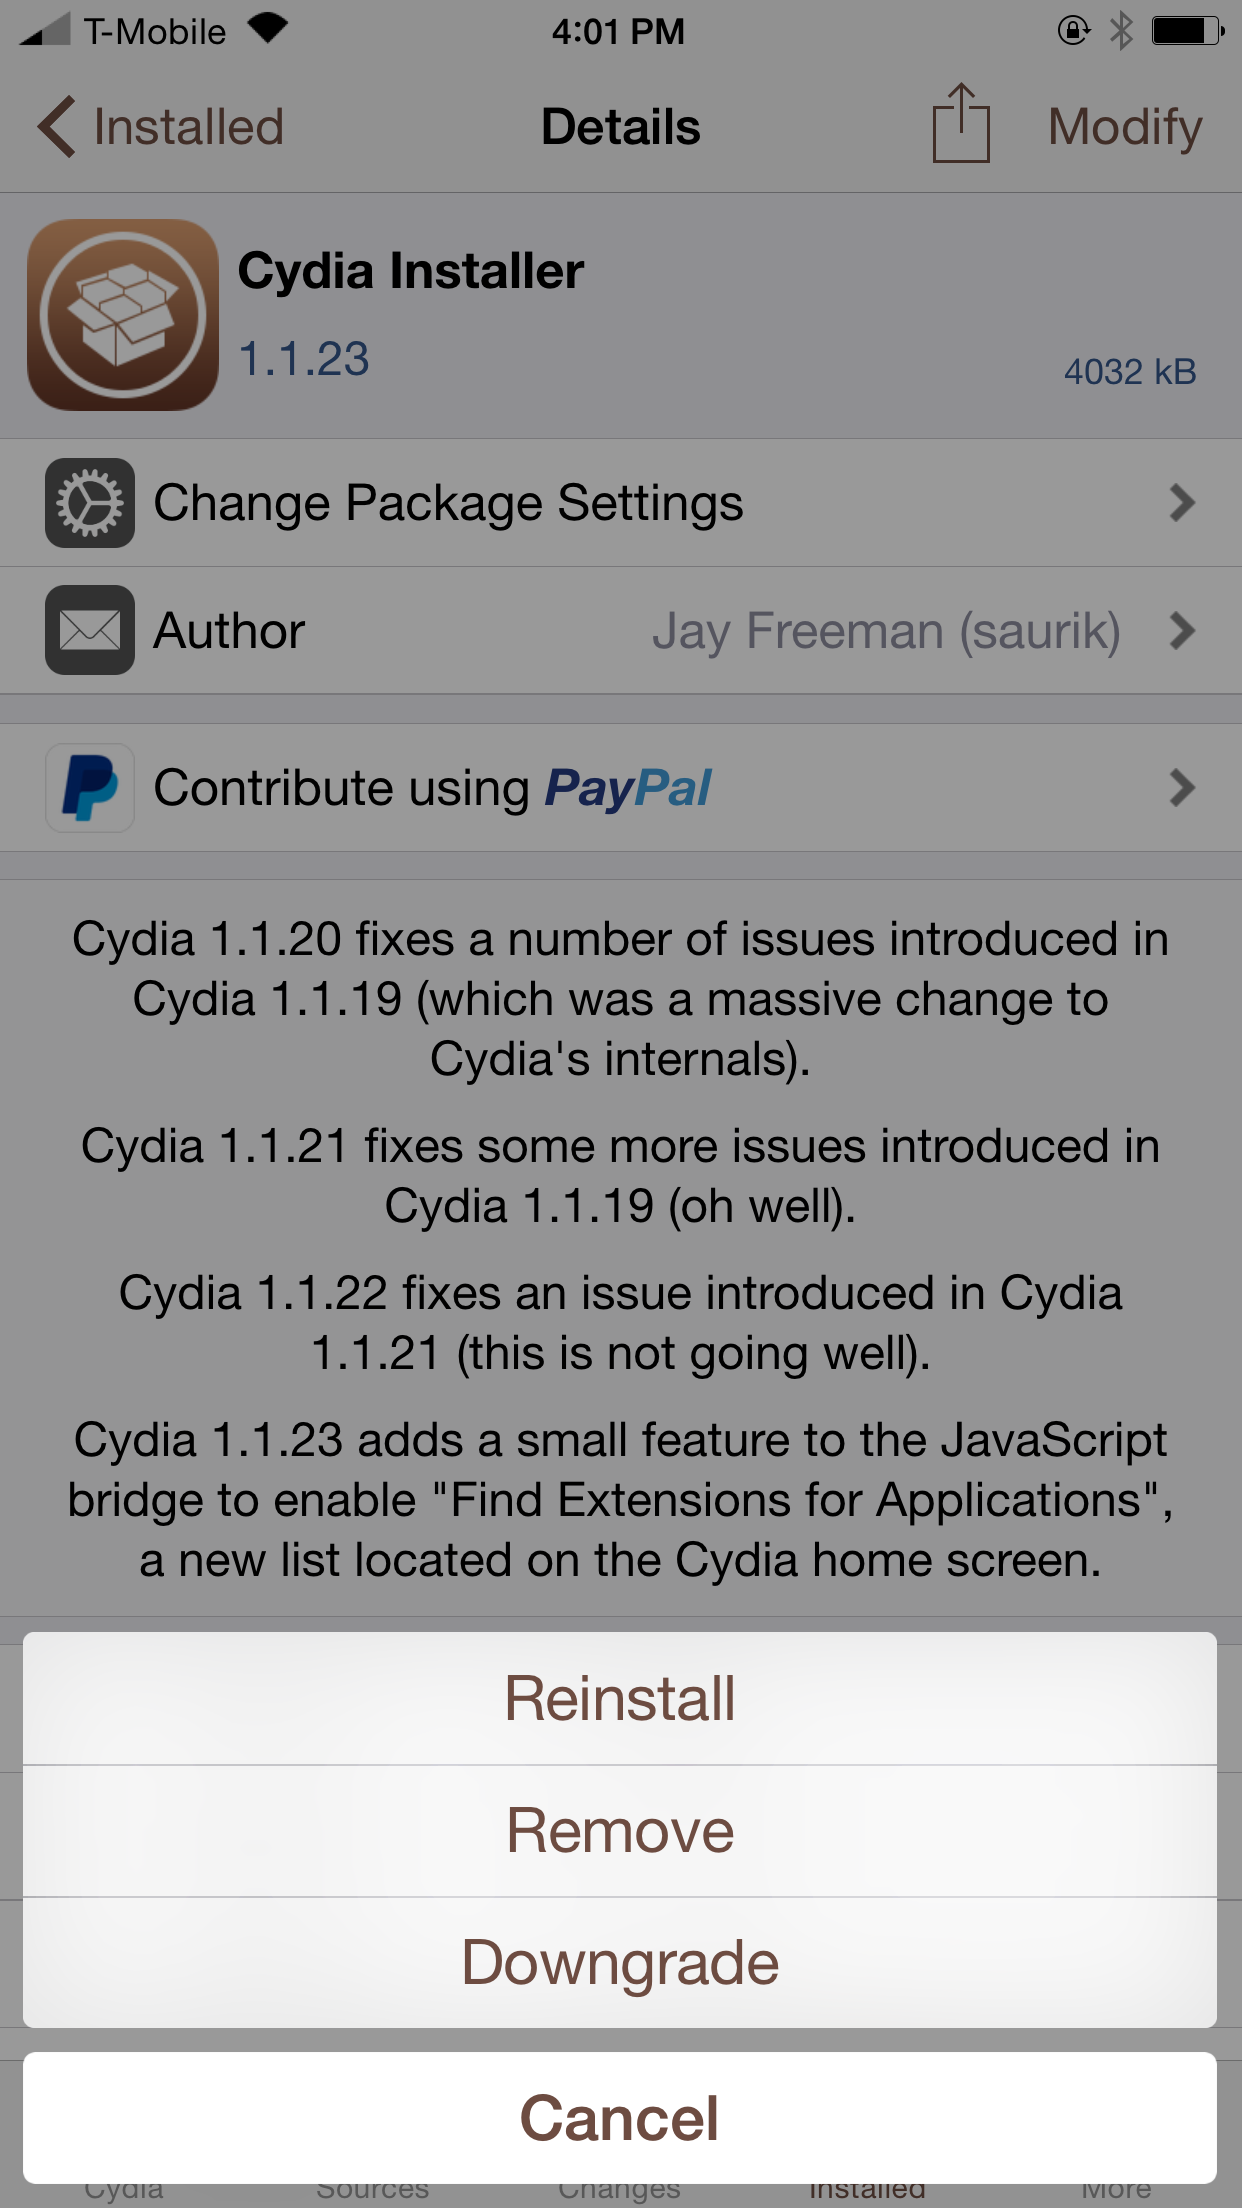 Cydia Downgrade